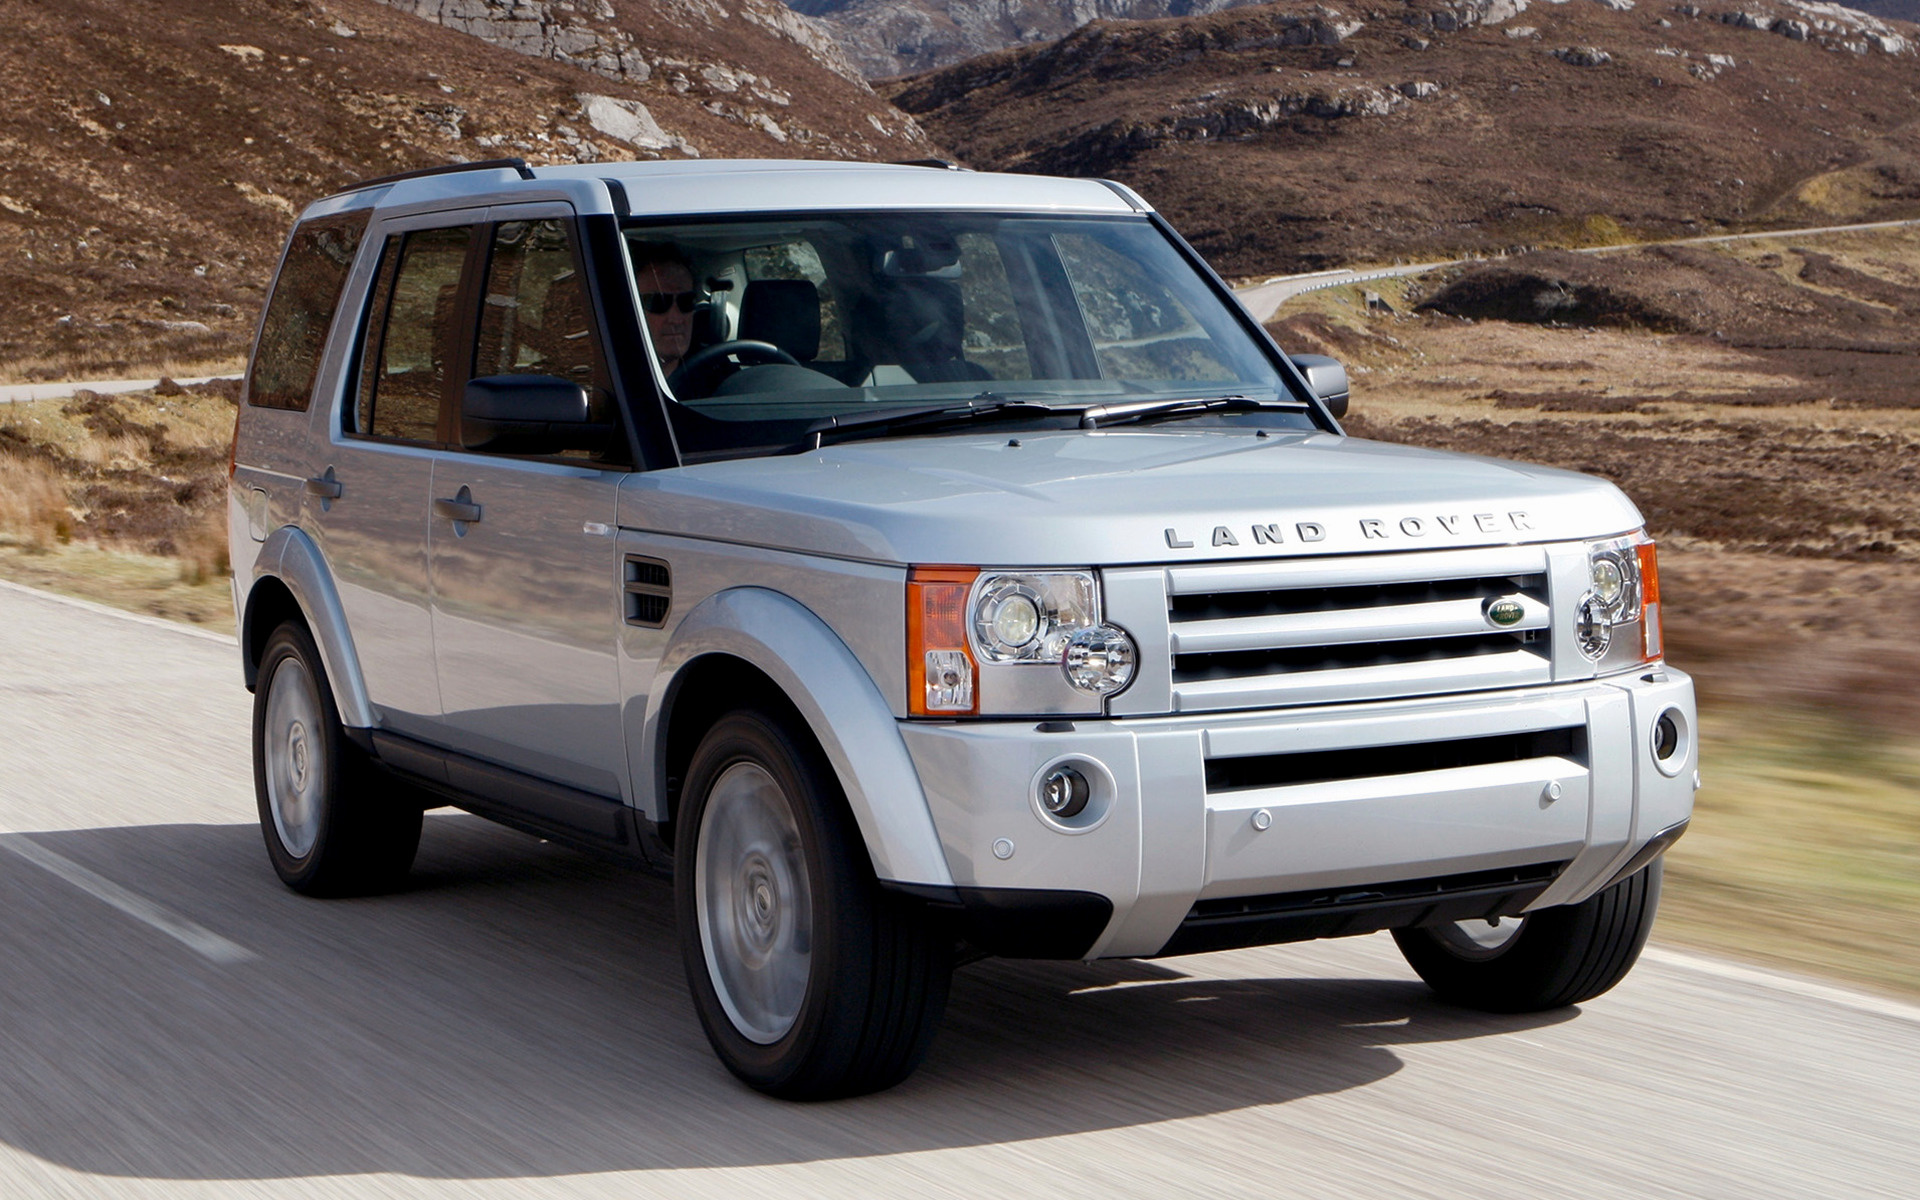 land rover discovery 3 hse 2008 uk wallpapers and hd. Black Bedroom Furniture Sets. Home Design Ideas